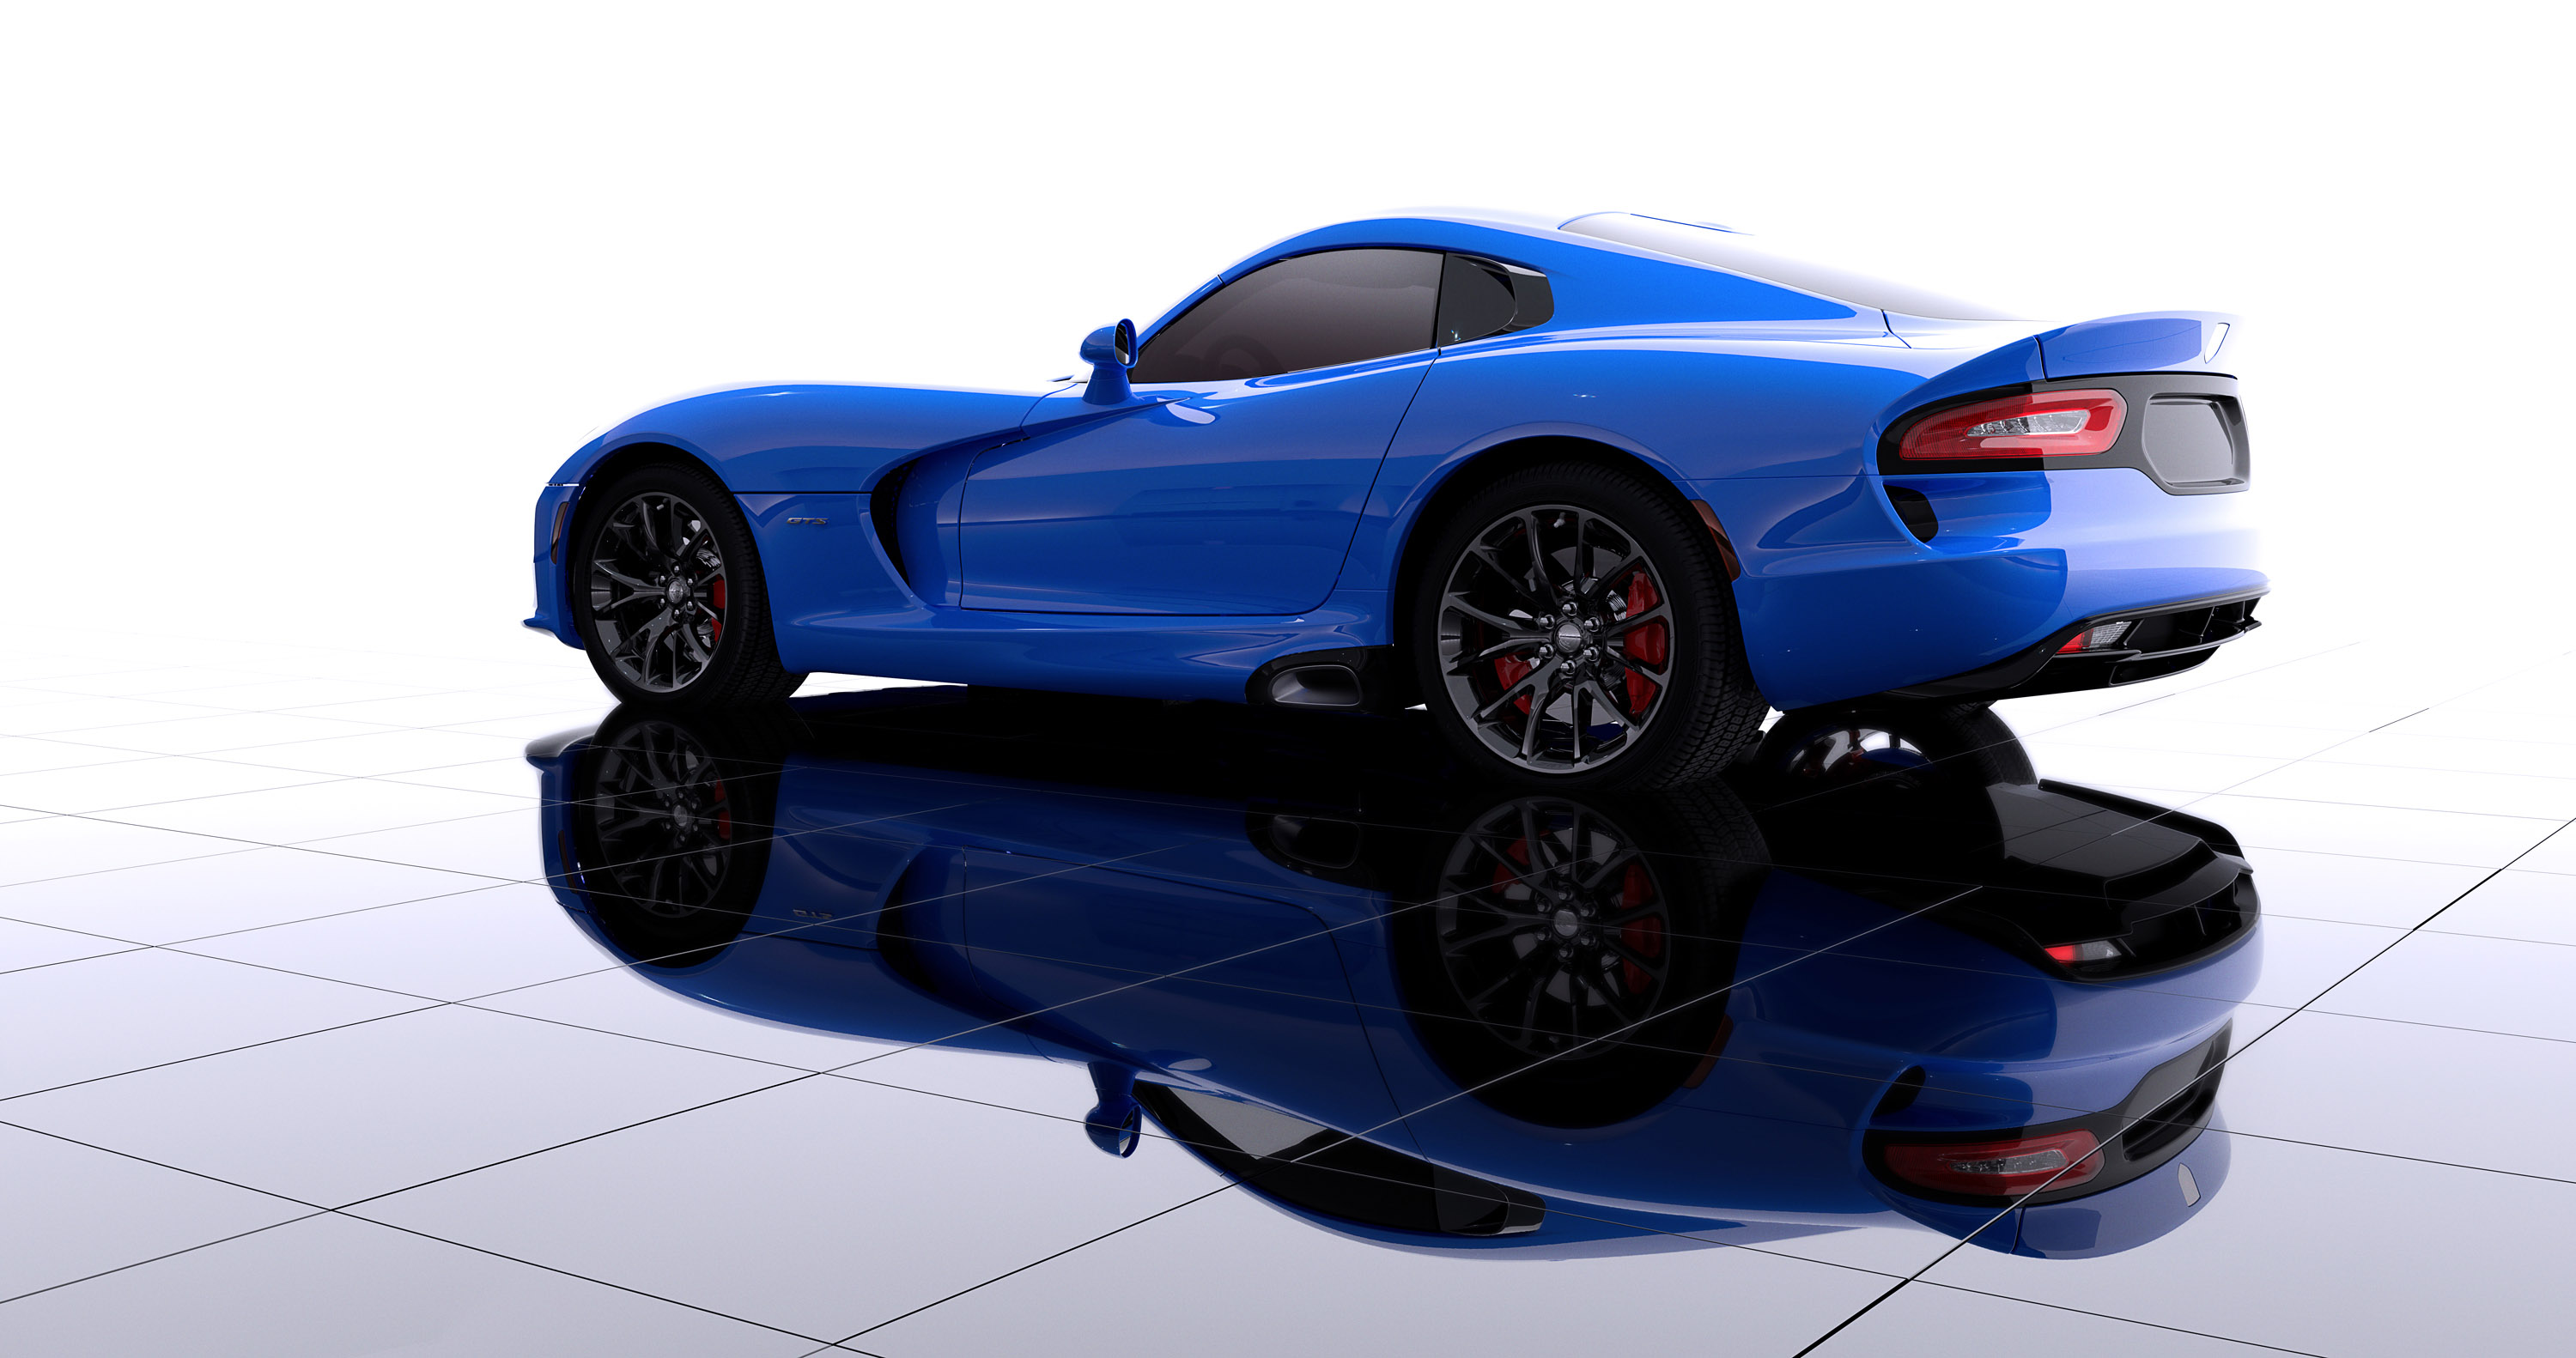 srt viper color contest an opportunity to be original